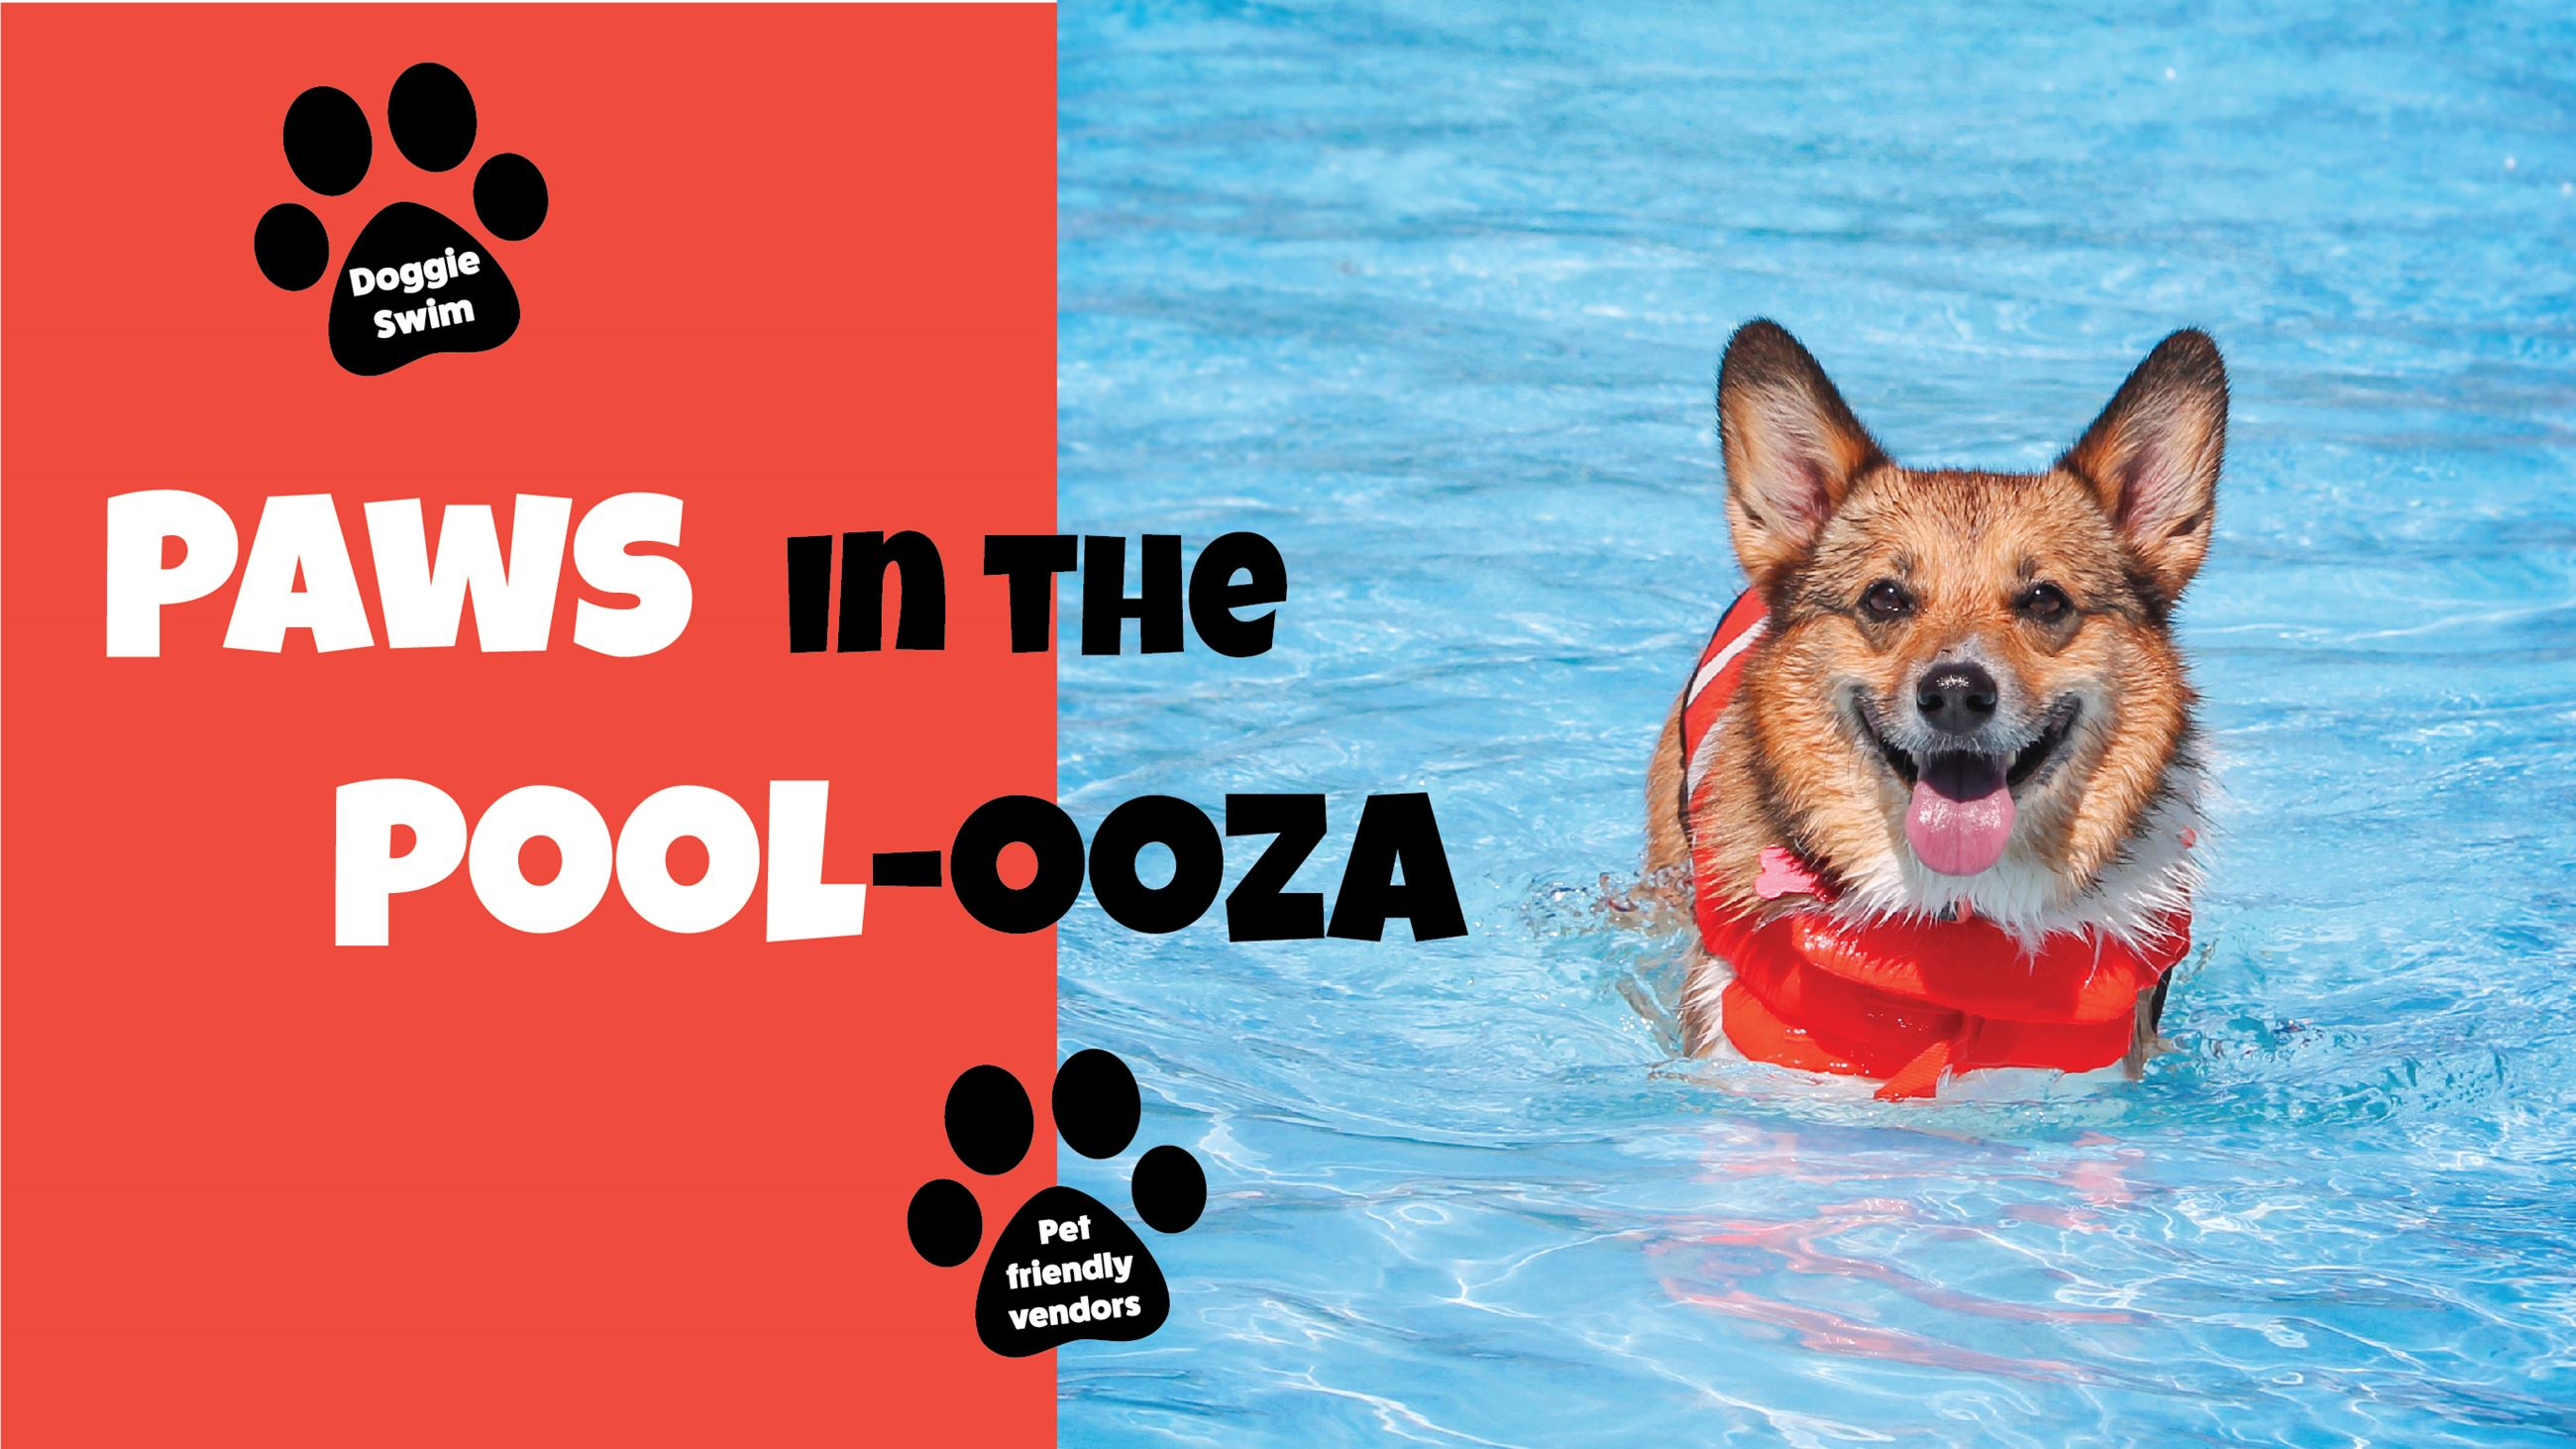 Paws in the Poolooza